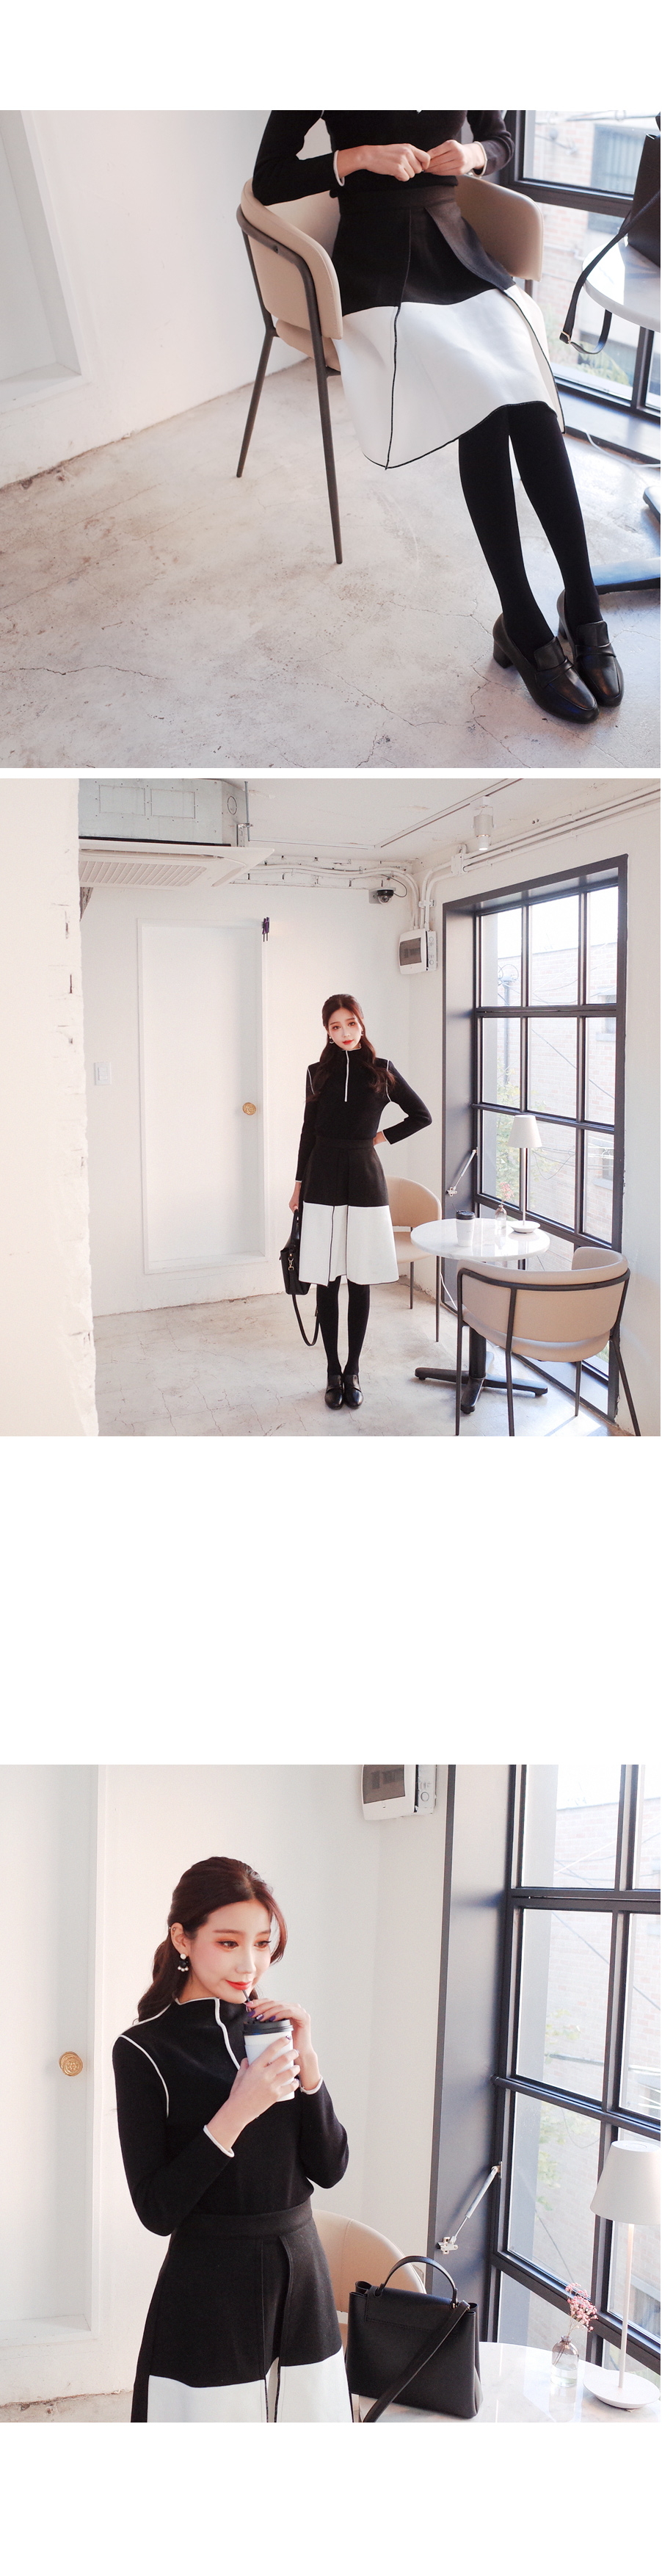 Fit from south knit knit + skirt SET